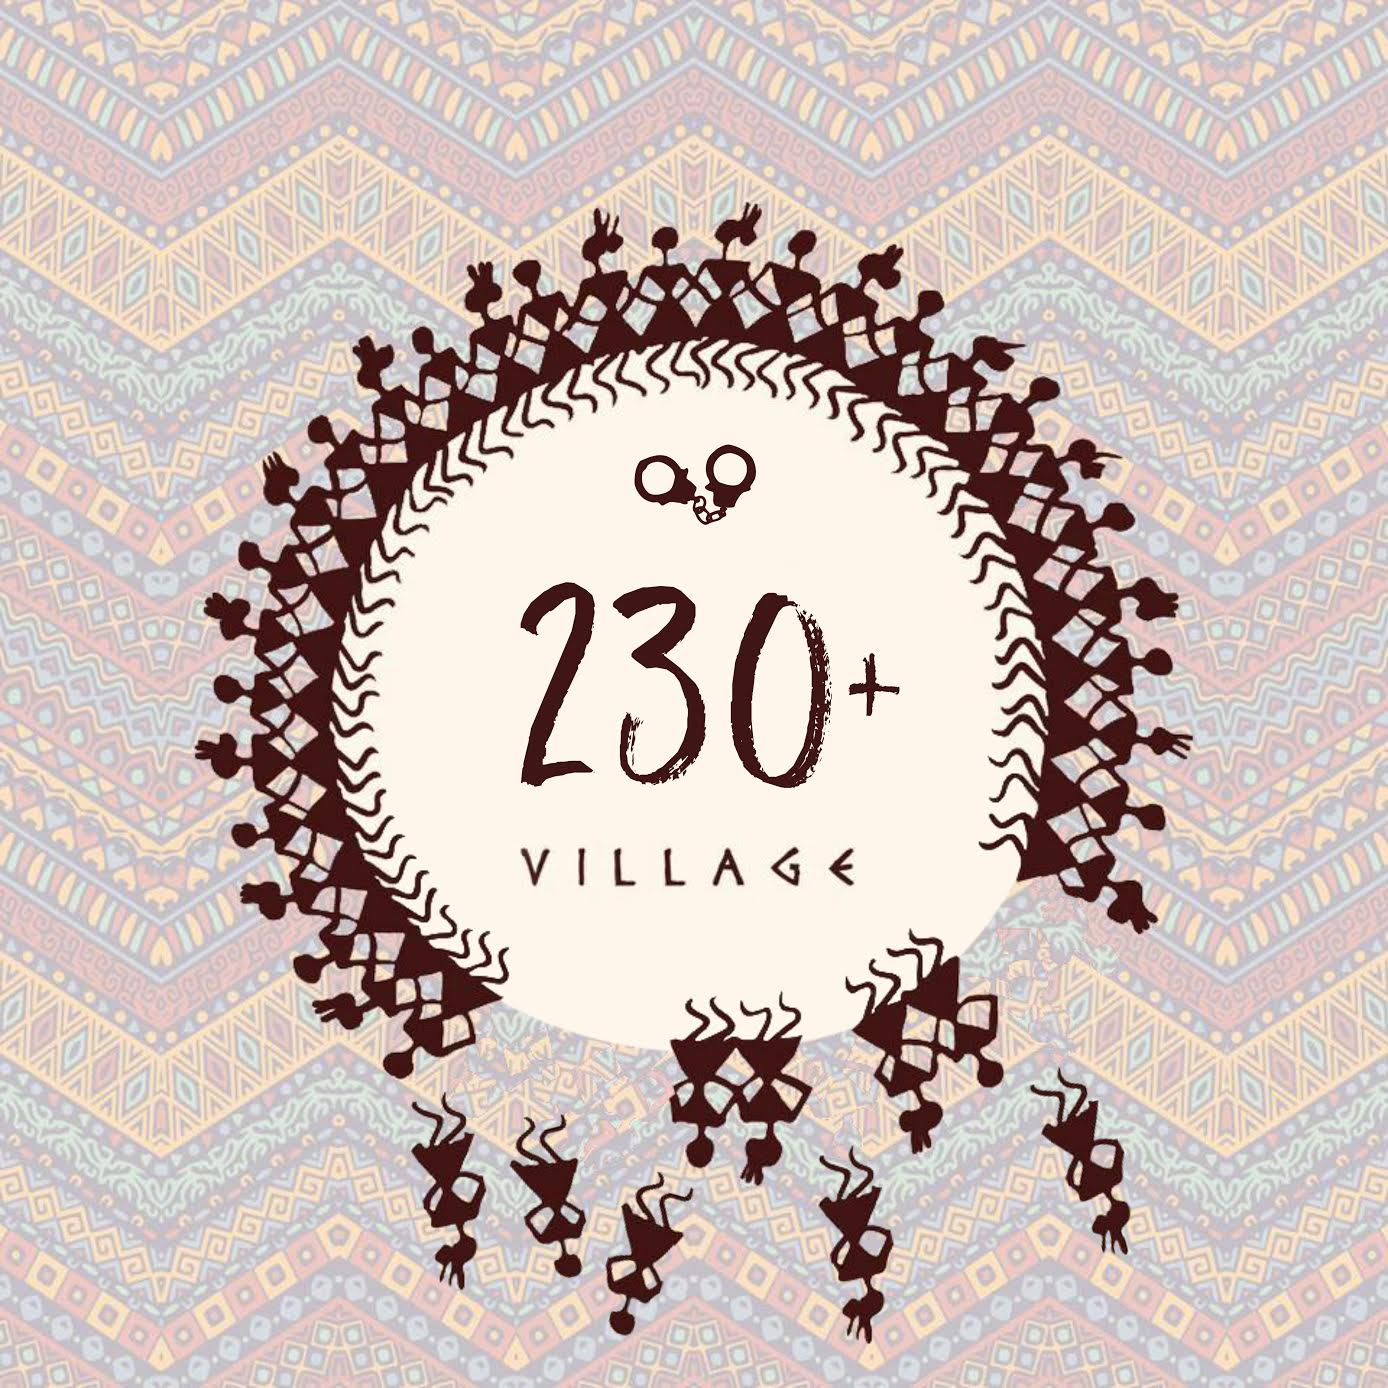 Logo of 1821 Village as modified by LGBQI activists.